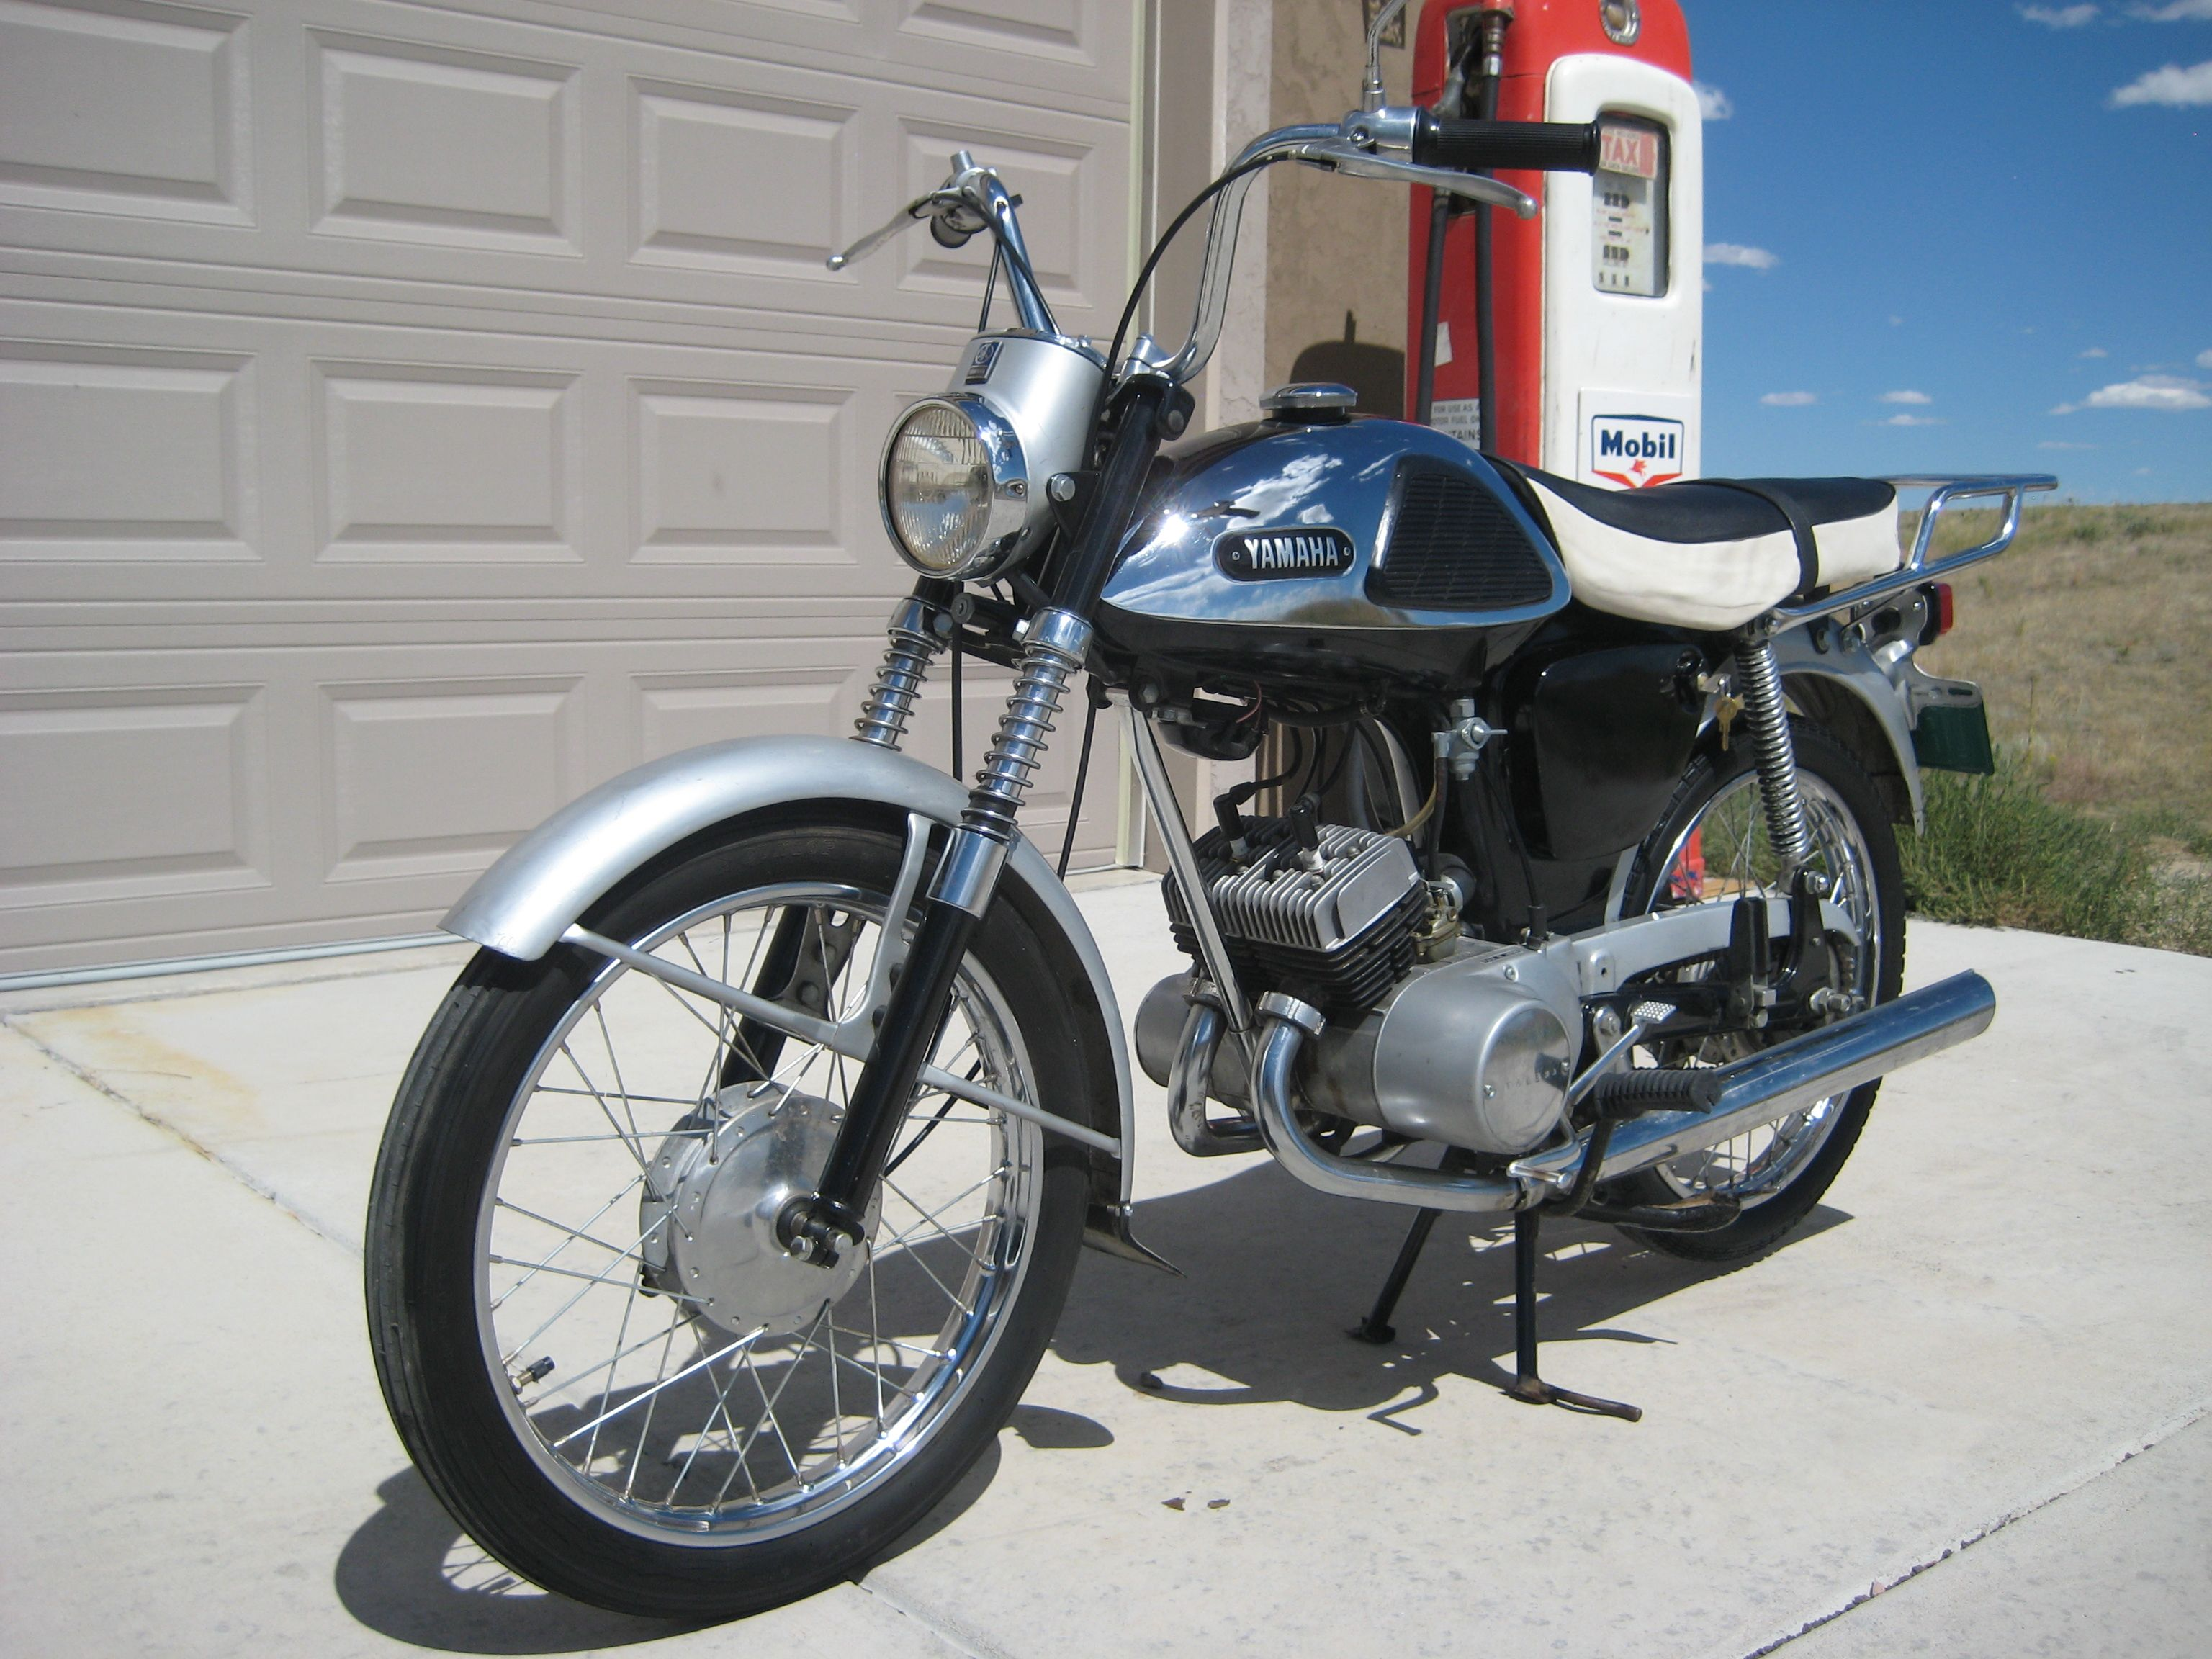 1966 Yamaha YL 1 Twin Jet 100cc 2 Stroke Engine W 4spd